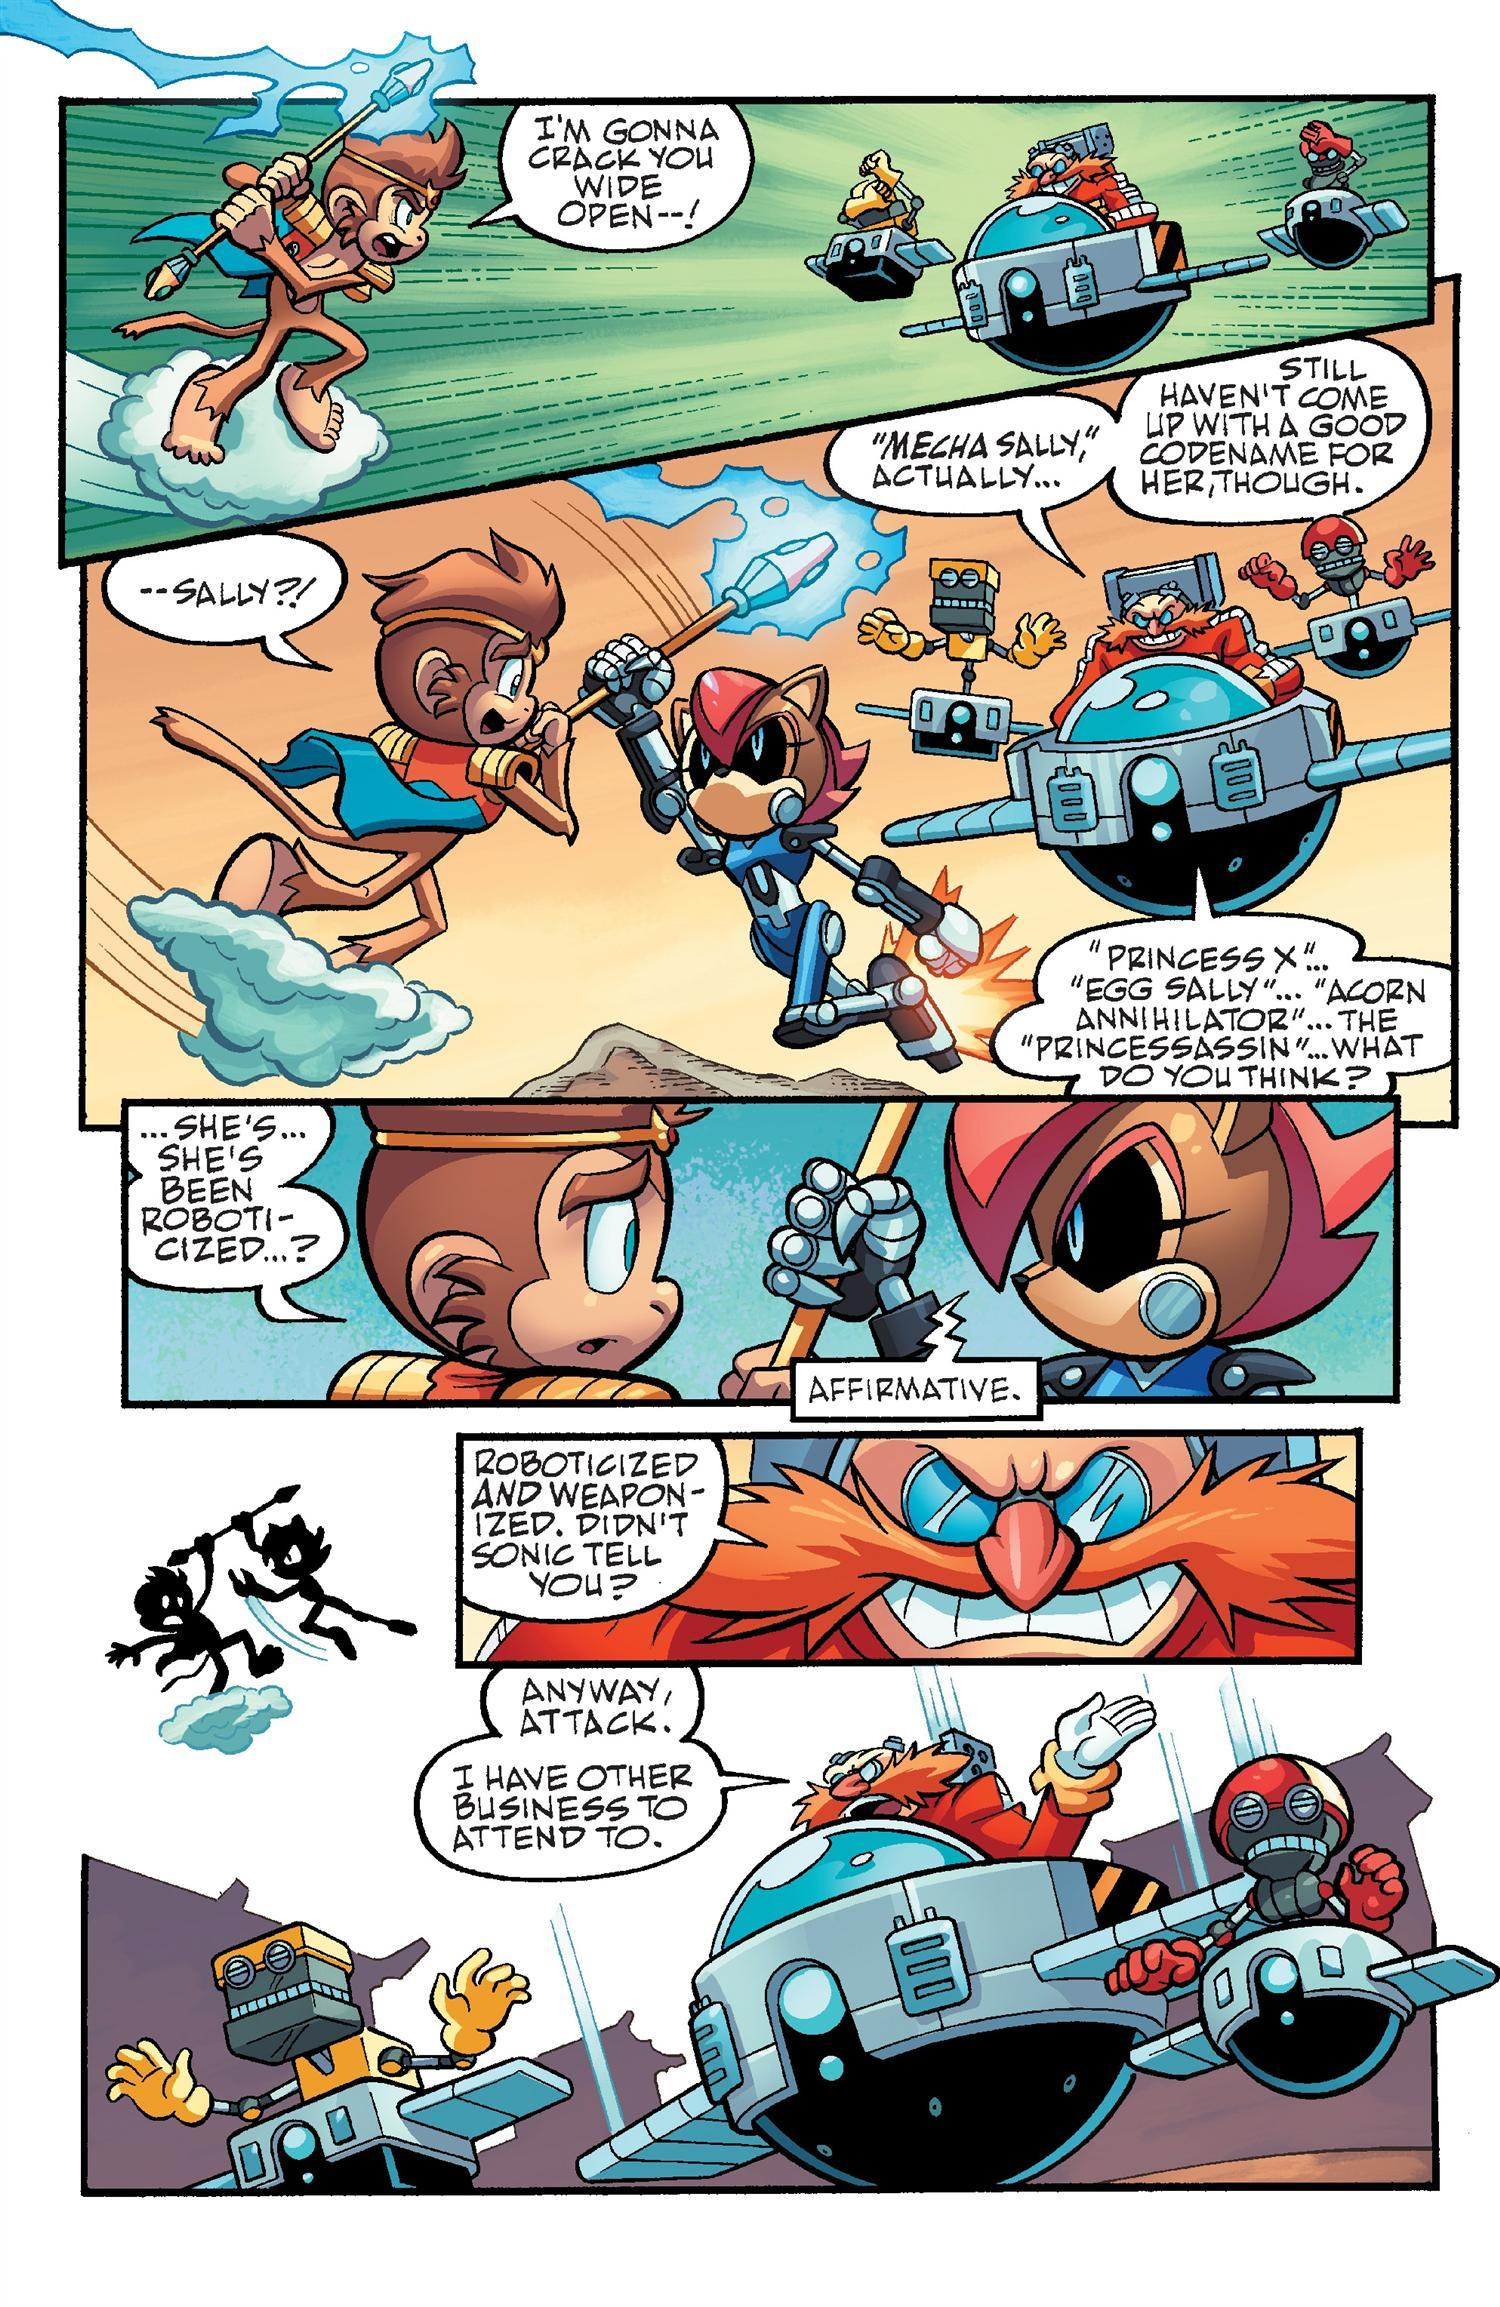 Sonic Universe #39 - Read Sonic Universe Issue #39 Page 12